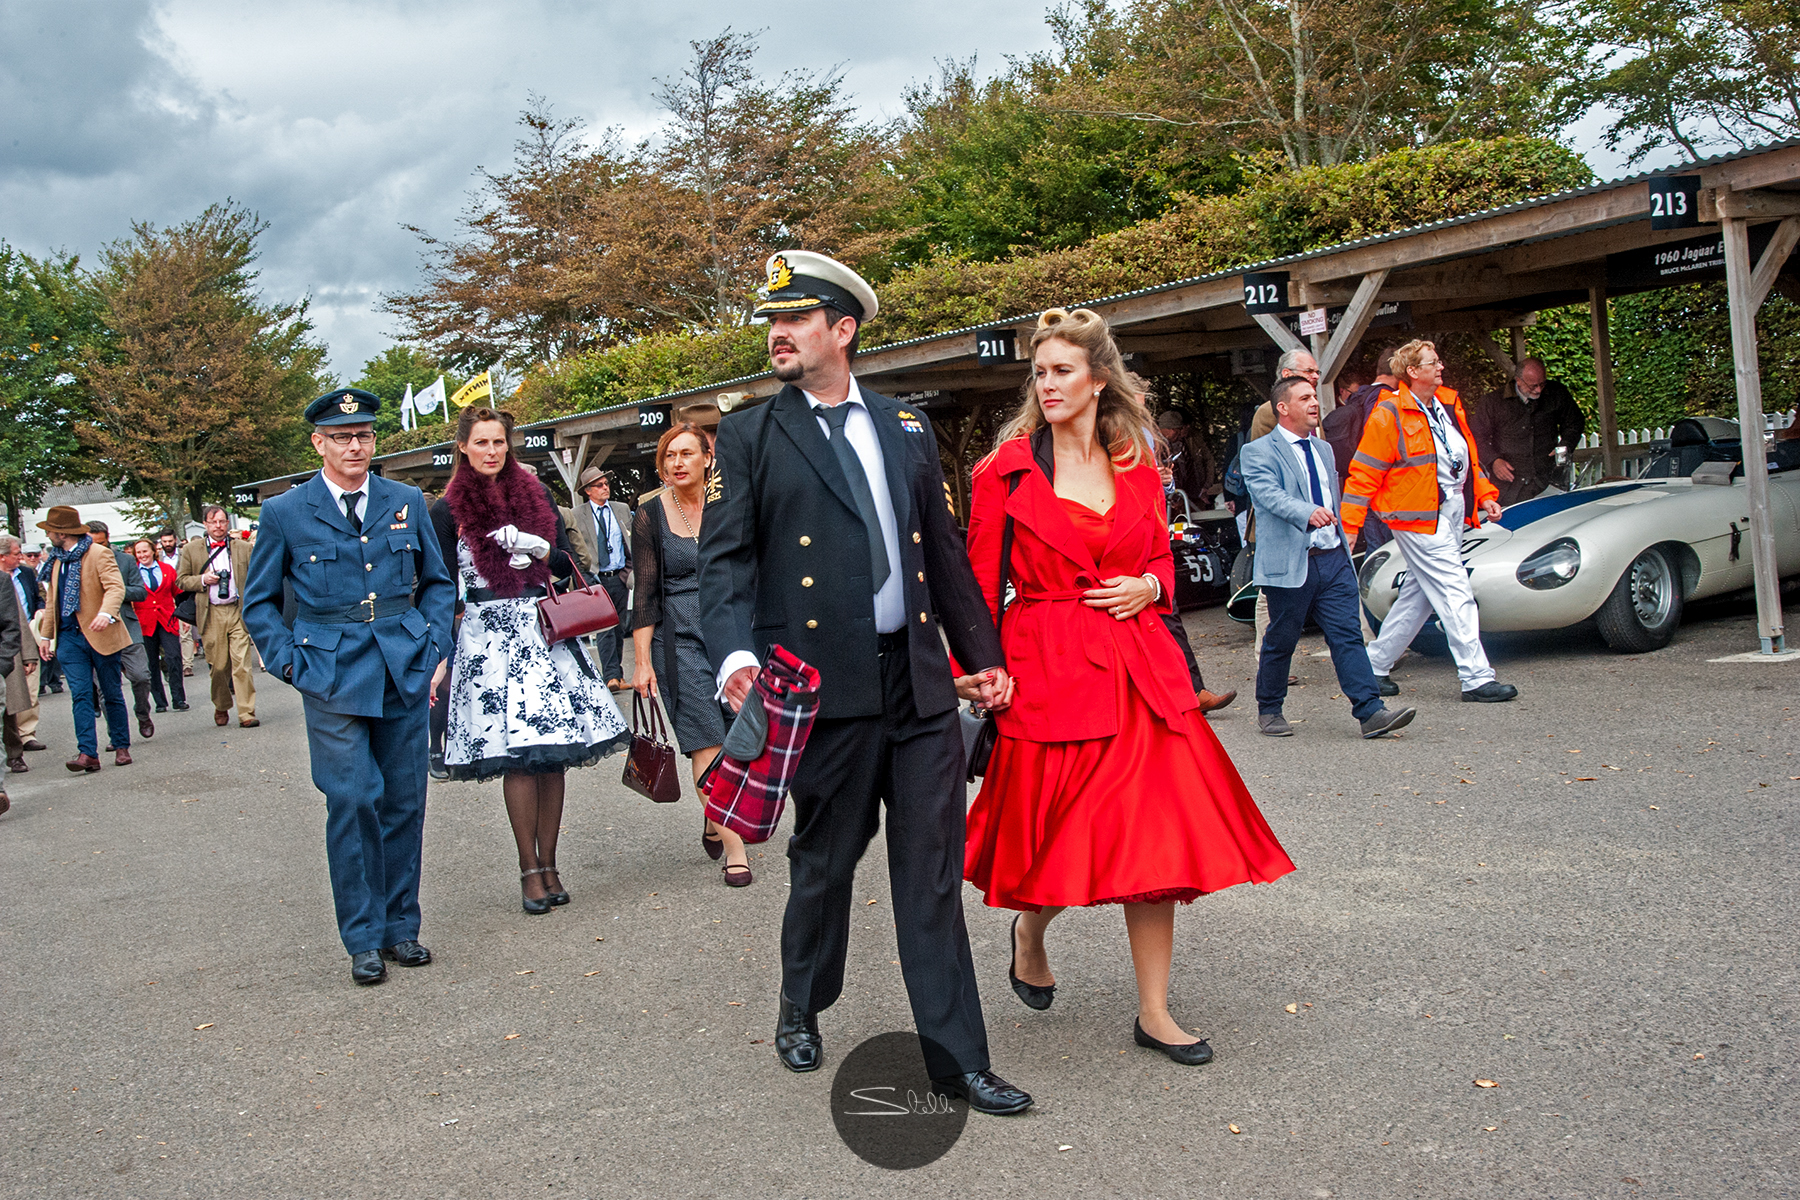 Stella Scordellis Goodwood Revival 2015 21 Watermarked.jpg